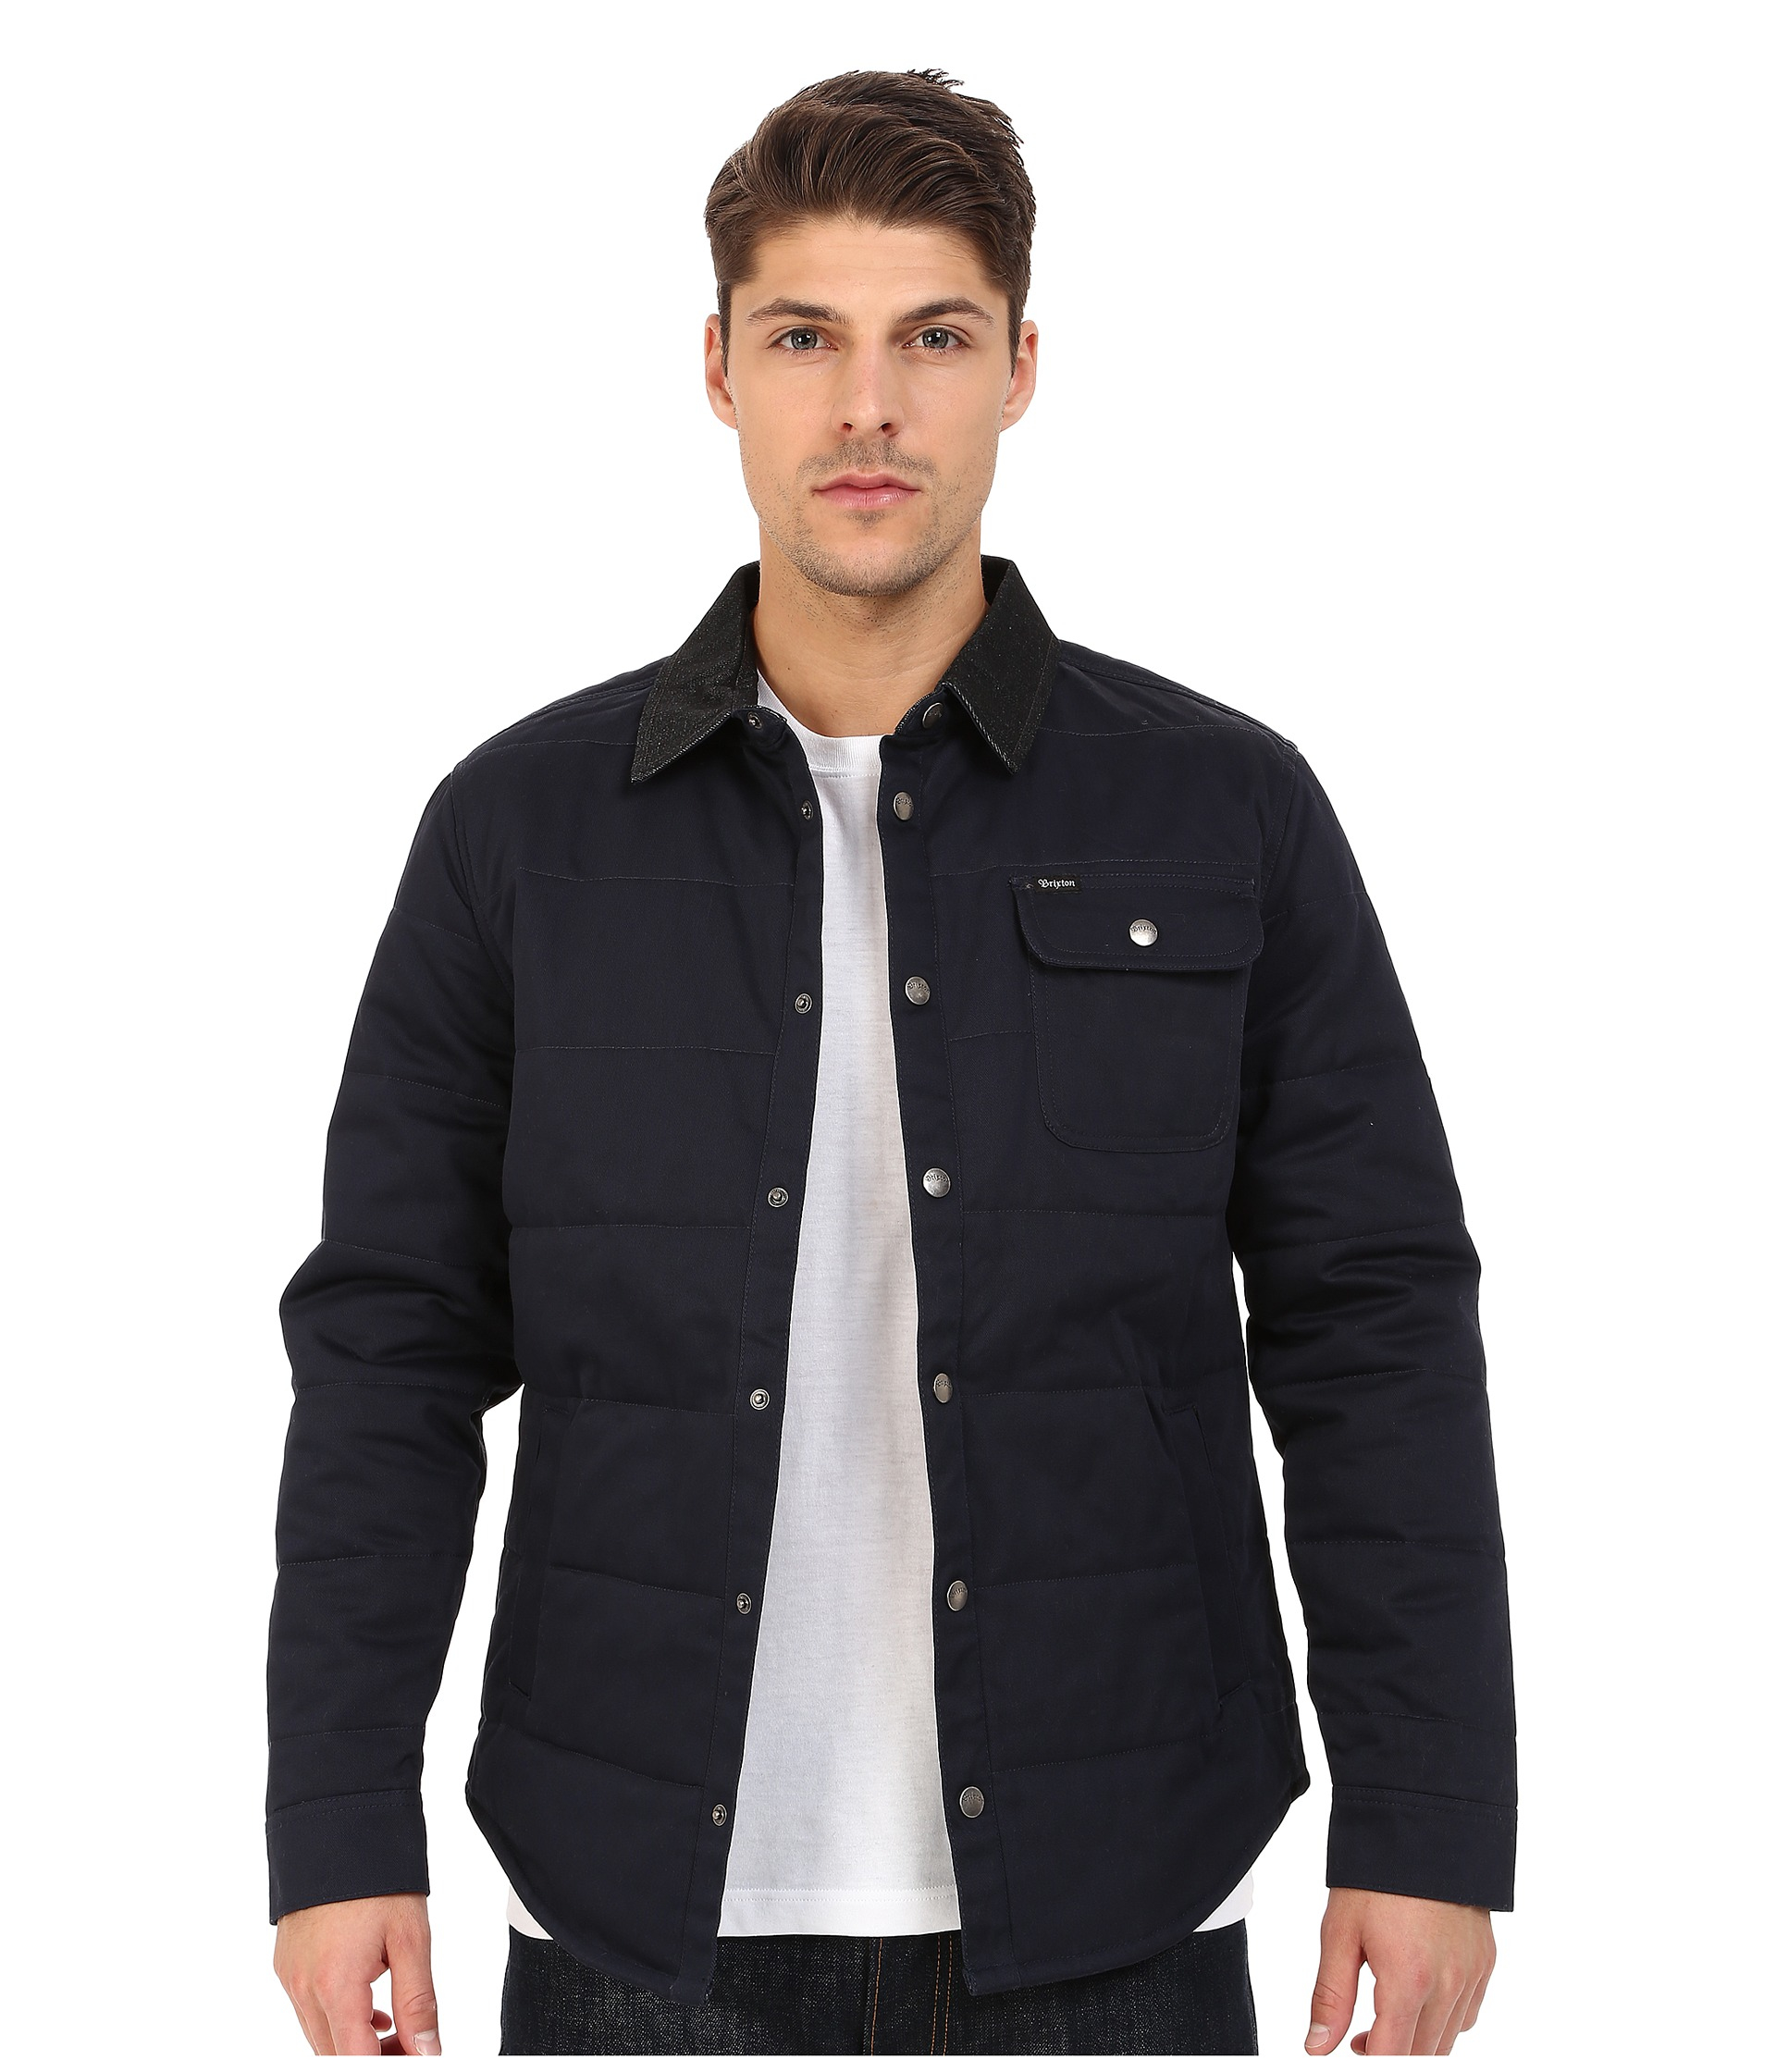 Lyst - Brixton Cass Jacket in Blue for Men 3f9eec844de